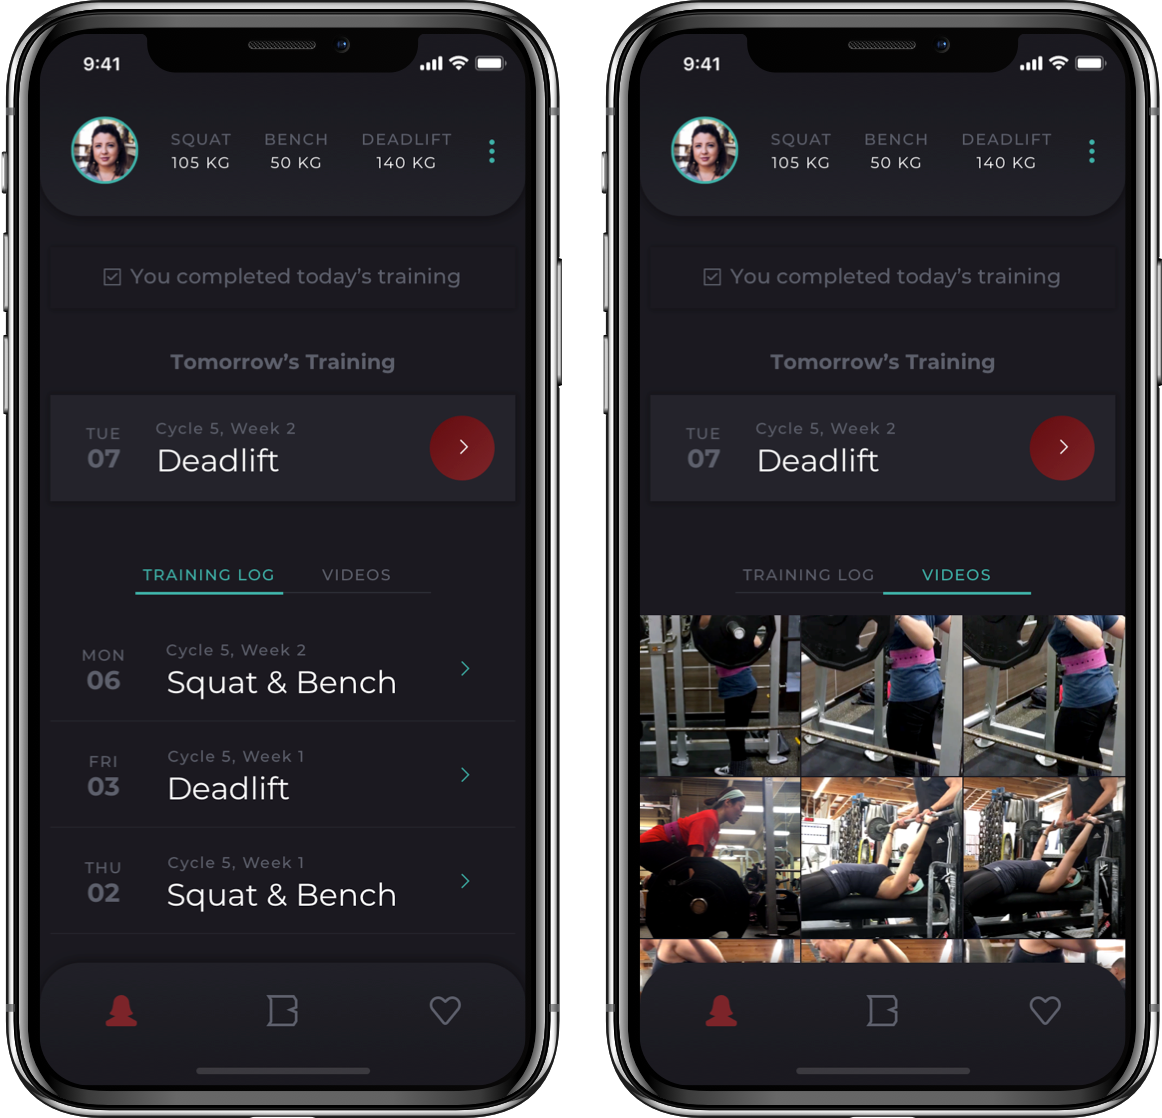 Barbellona mobile app screens for analyzing progress